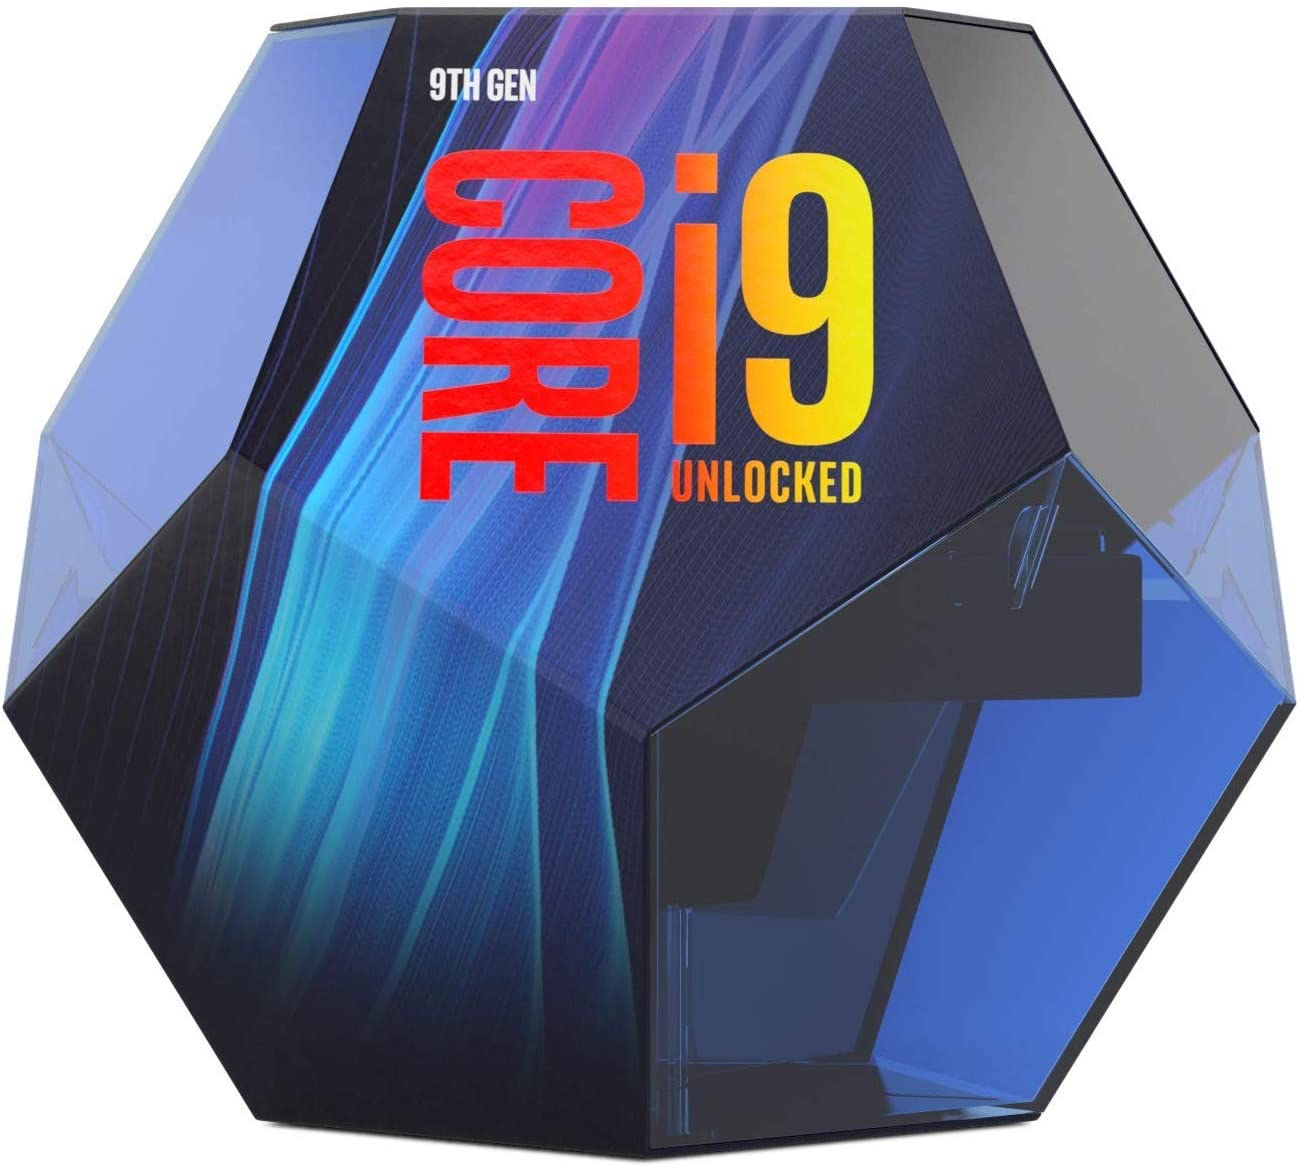 Intel Core i9 i9-9900K Octa-core (8 Core) 3.60 GHz Processor - Socket H4 LGA-1151 - Retail Pack - 8 GT/s DMI - 64-bit Processing - 5 GHz Overclocking Speed - 14 nm - 3 Number of Monitors Supported - I